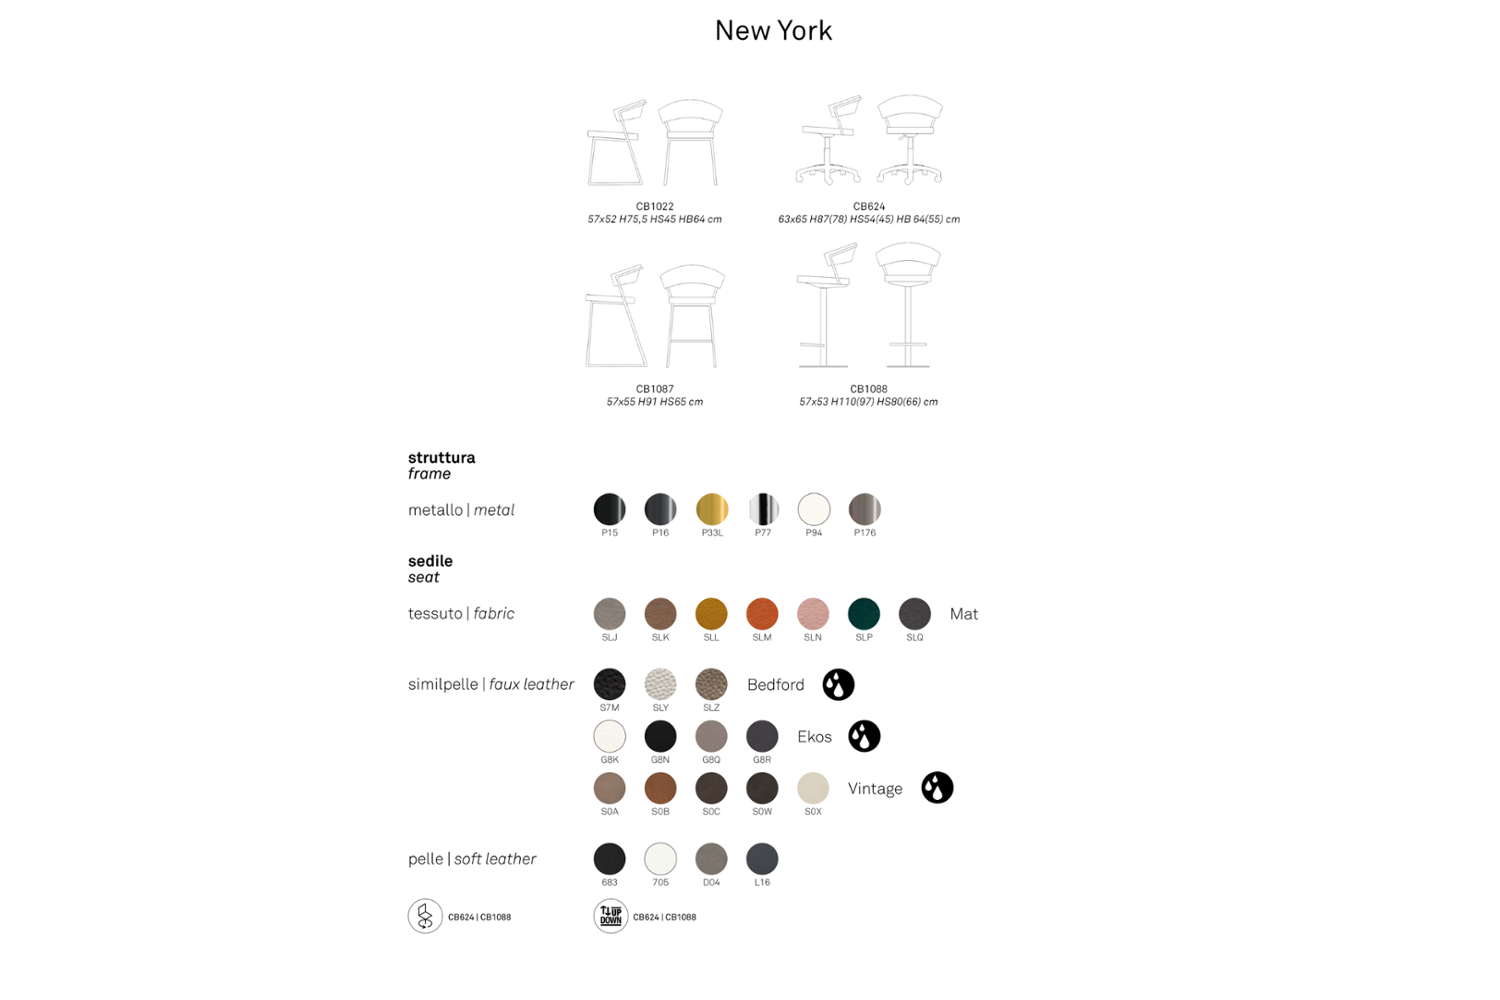 SCHEMATIC new york 2020 SCHEMATIC new york 2020.png new york connubia dining schematic